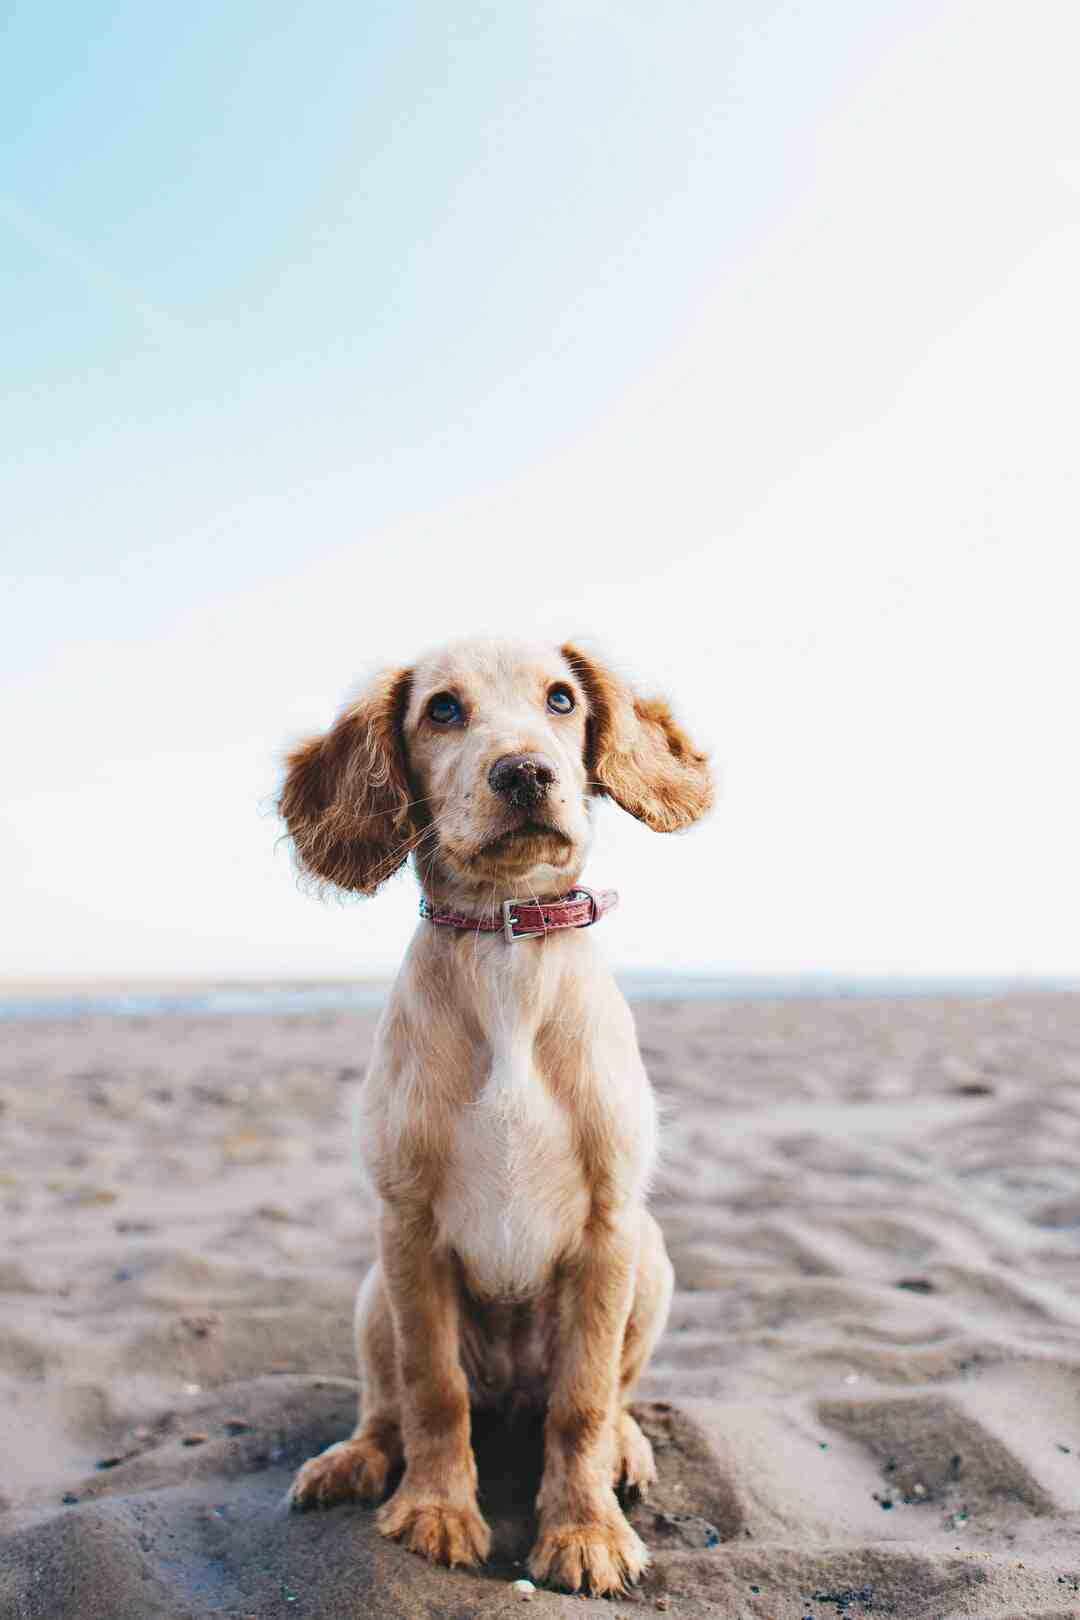 How to Contact a Dog Breeder